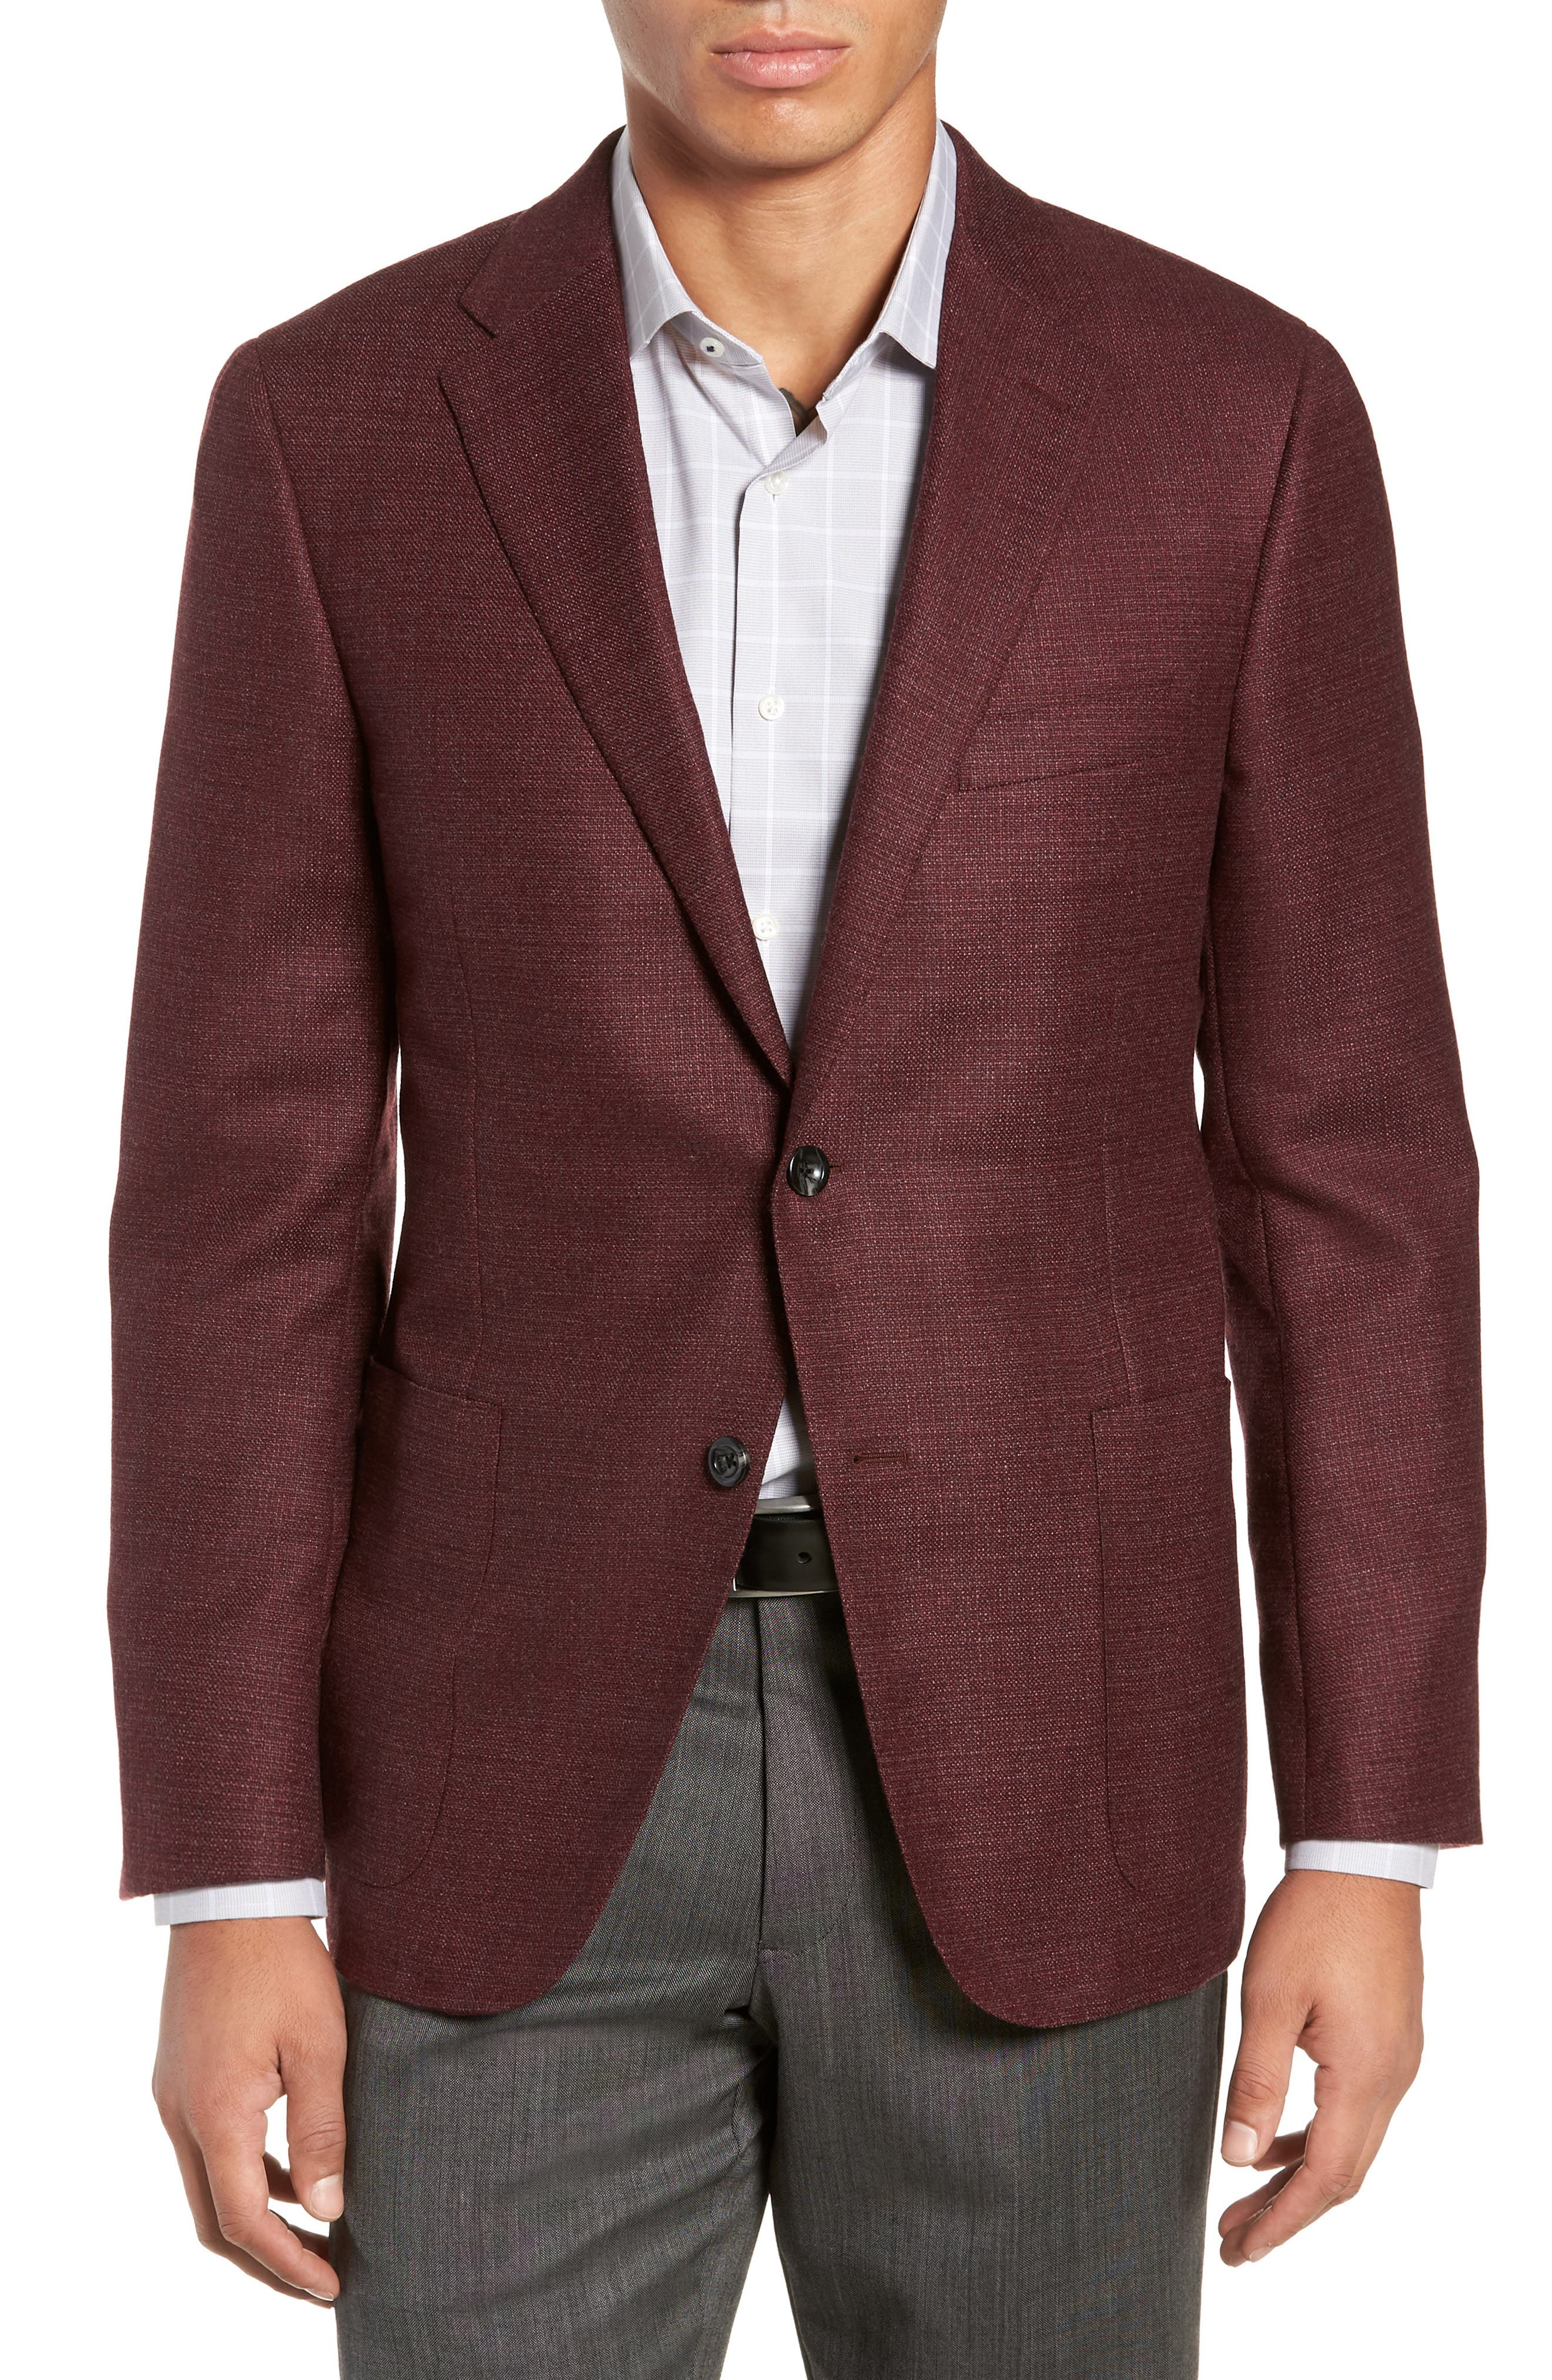 HICKEY FREEMAN Weightless Classic Fit Wool & Silk Sport Coat in Burgundy